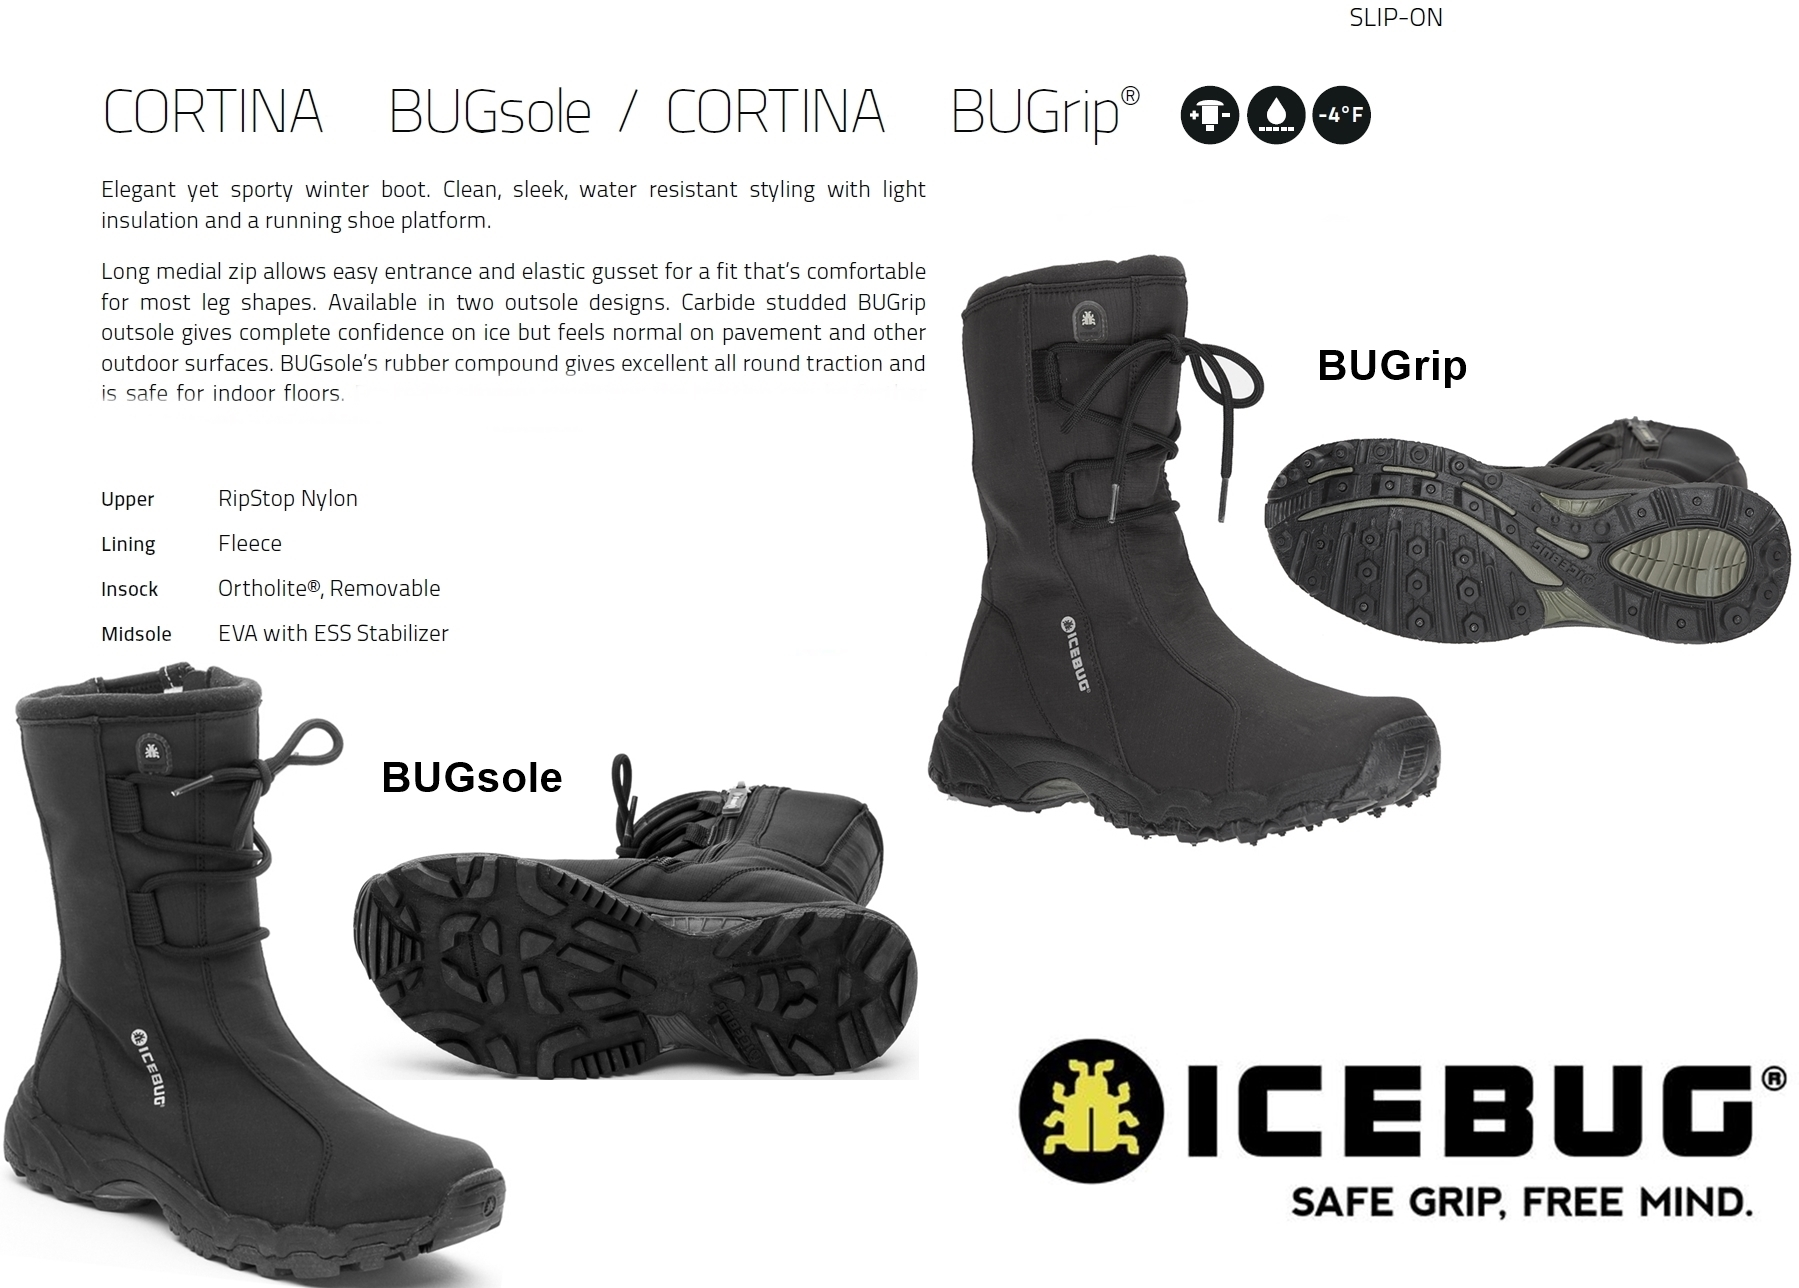 New Shoes Bugrip Bugsole Ice Winter Snow Boots Womens Icebug Cortina XwkOP8n0